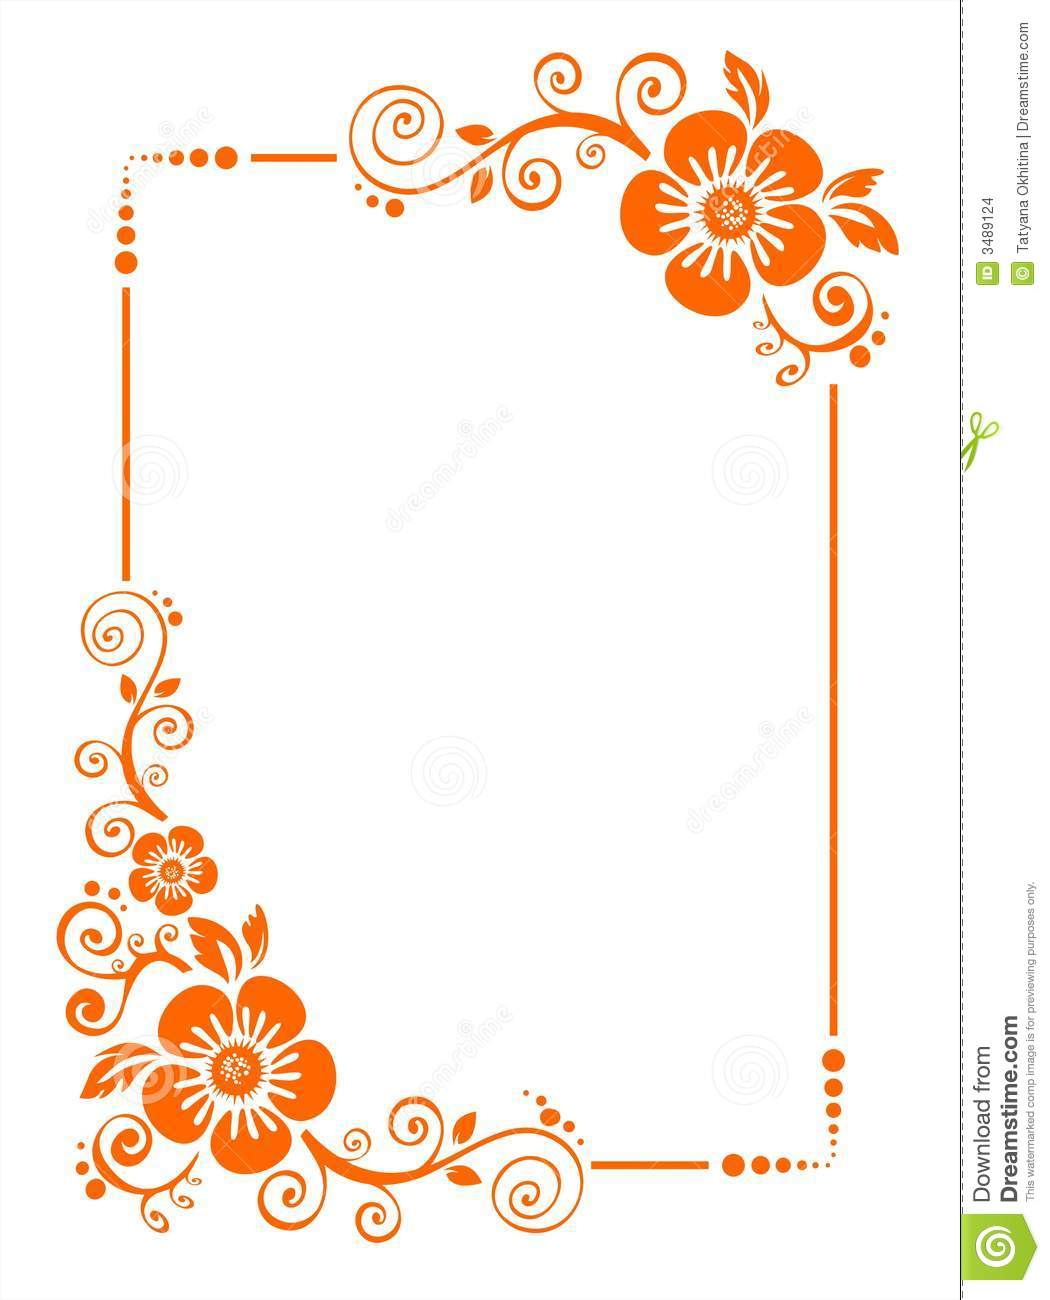 Orange flower border stock vector. Illustration of abstract - 3489124